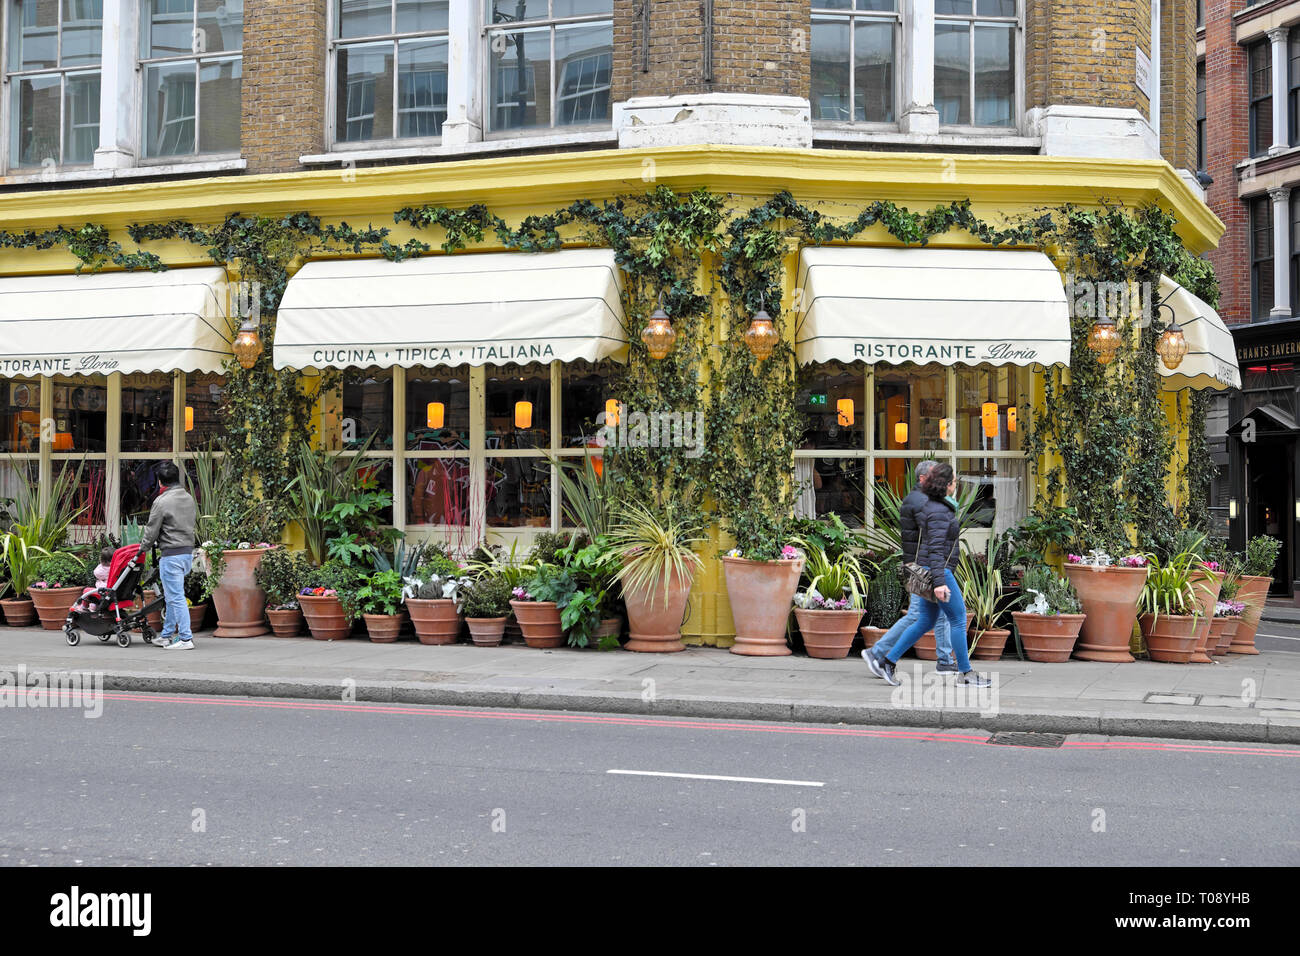 Italian Restaurant London Fotos E Imagenes De Stock Pagina 3 Alamy